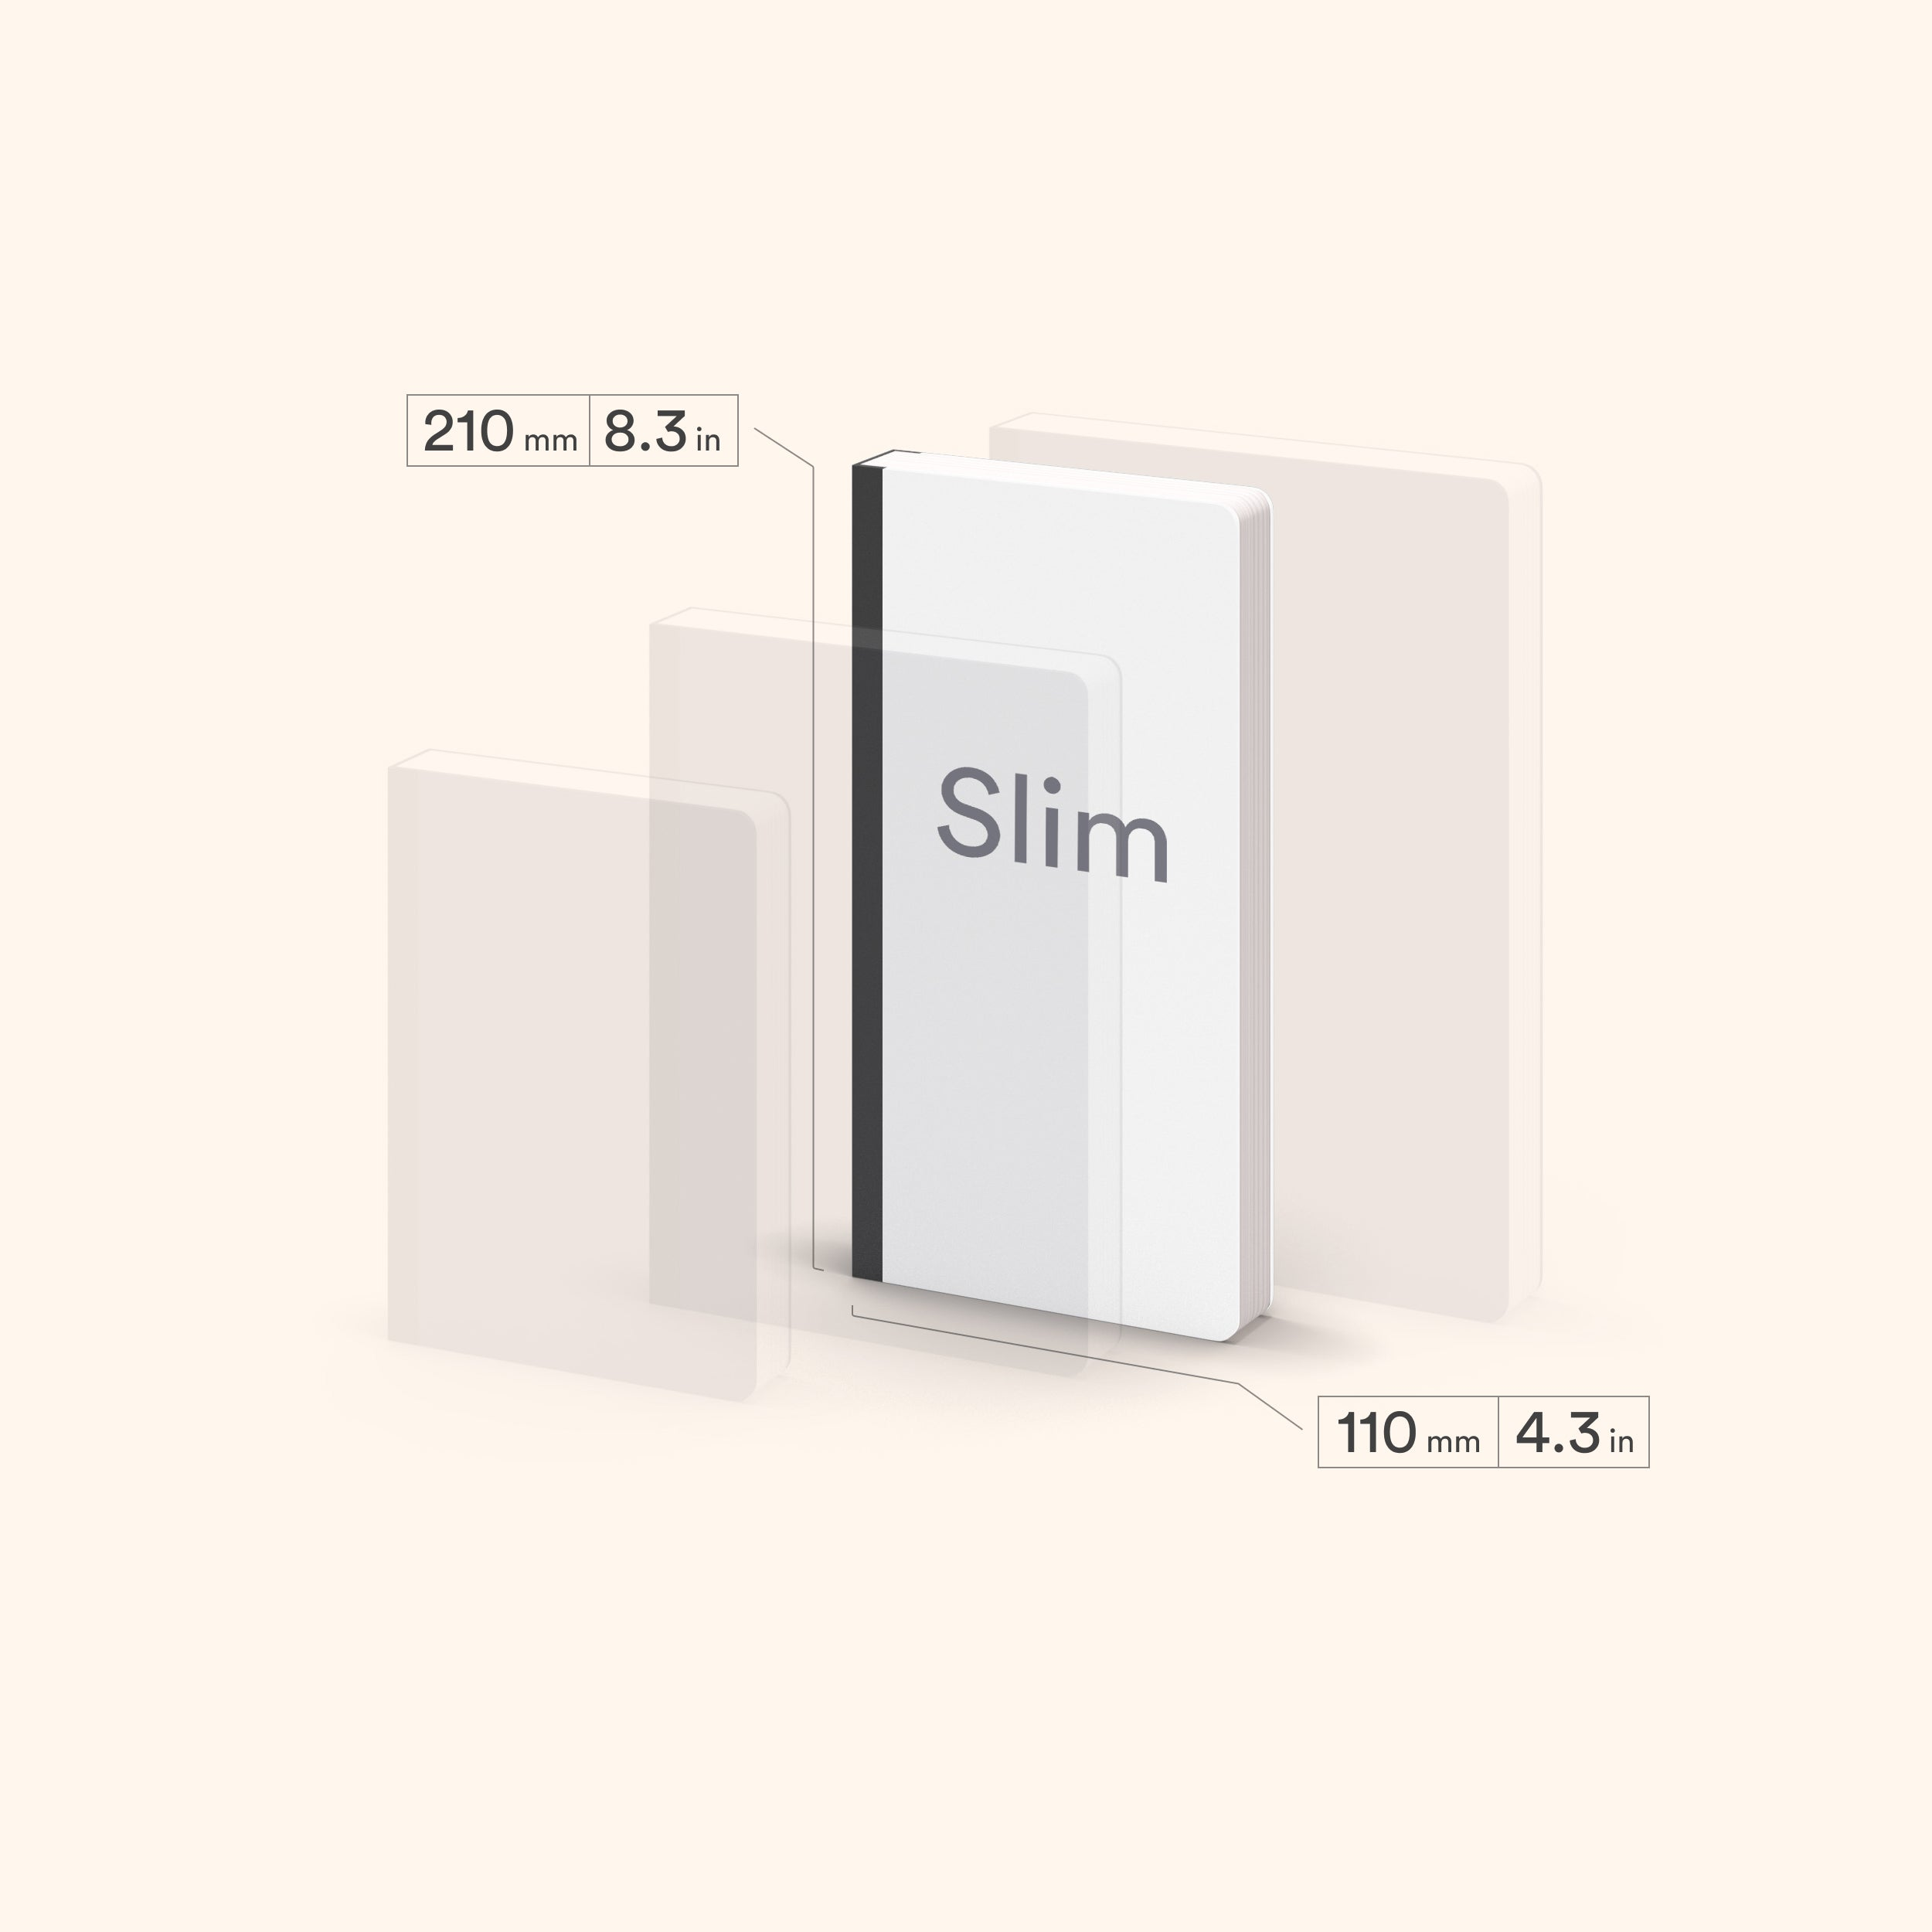 N.306 (GRID) Notebook. Slim / Traveler's notebook size